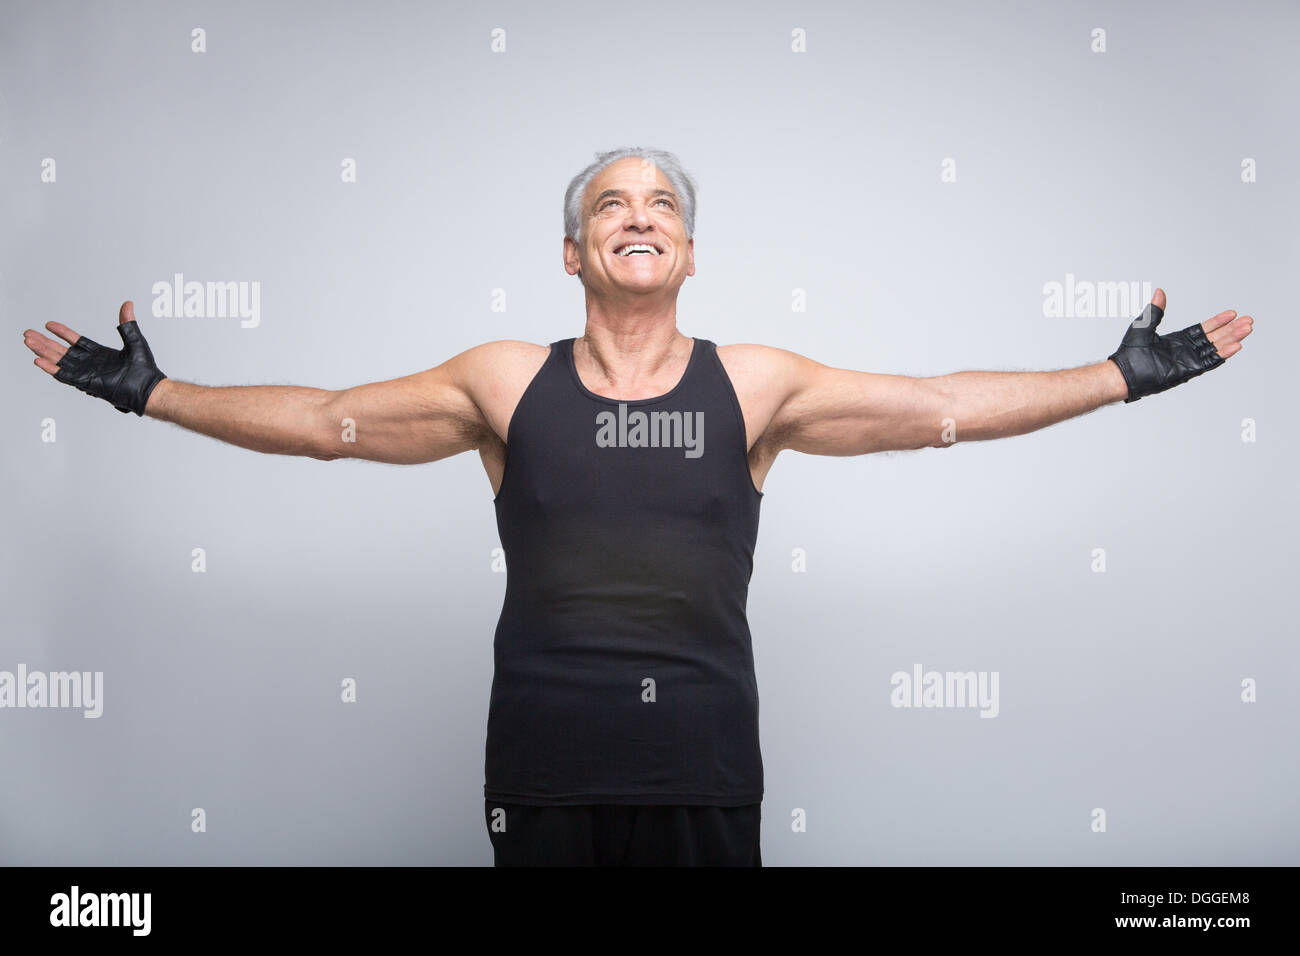 Senior man with arms out looking up - Stock Image